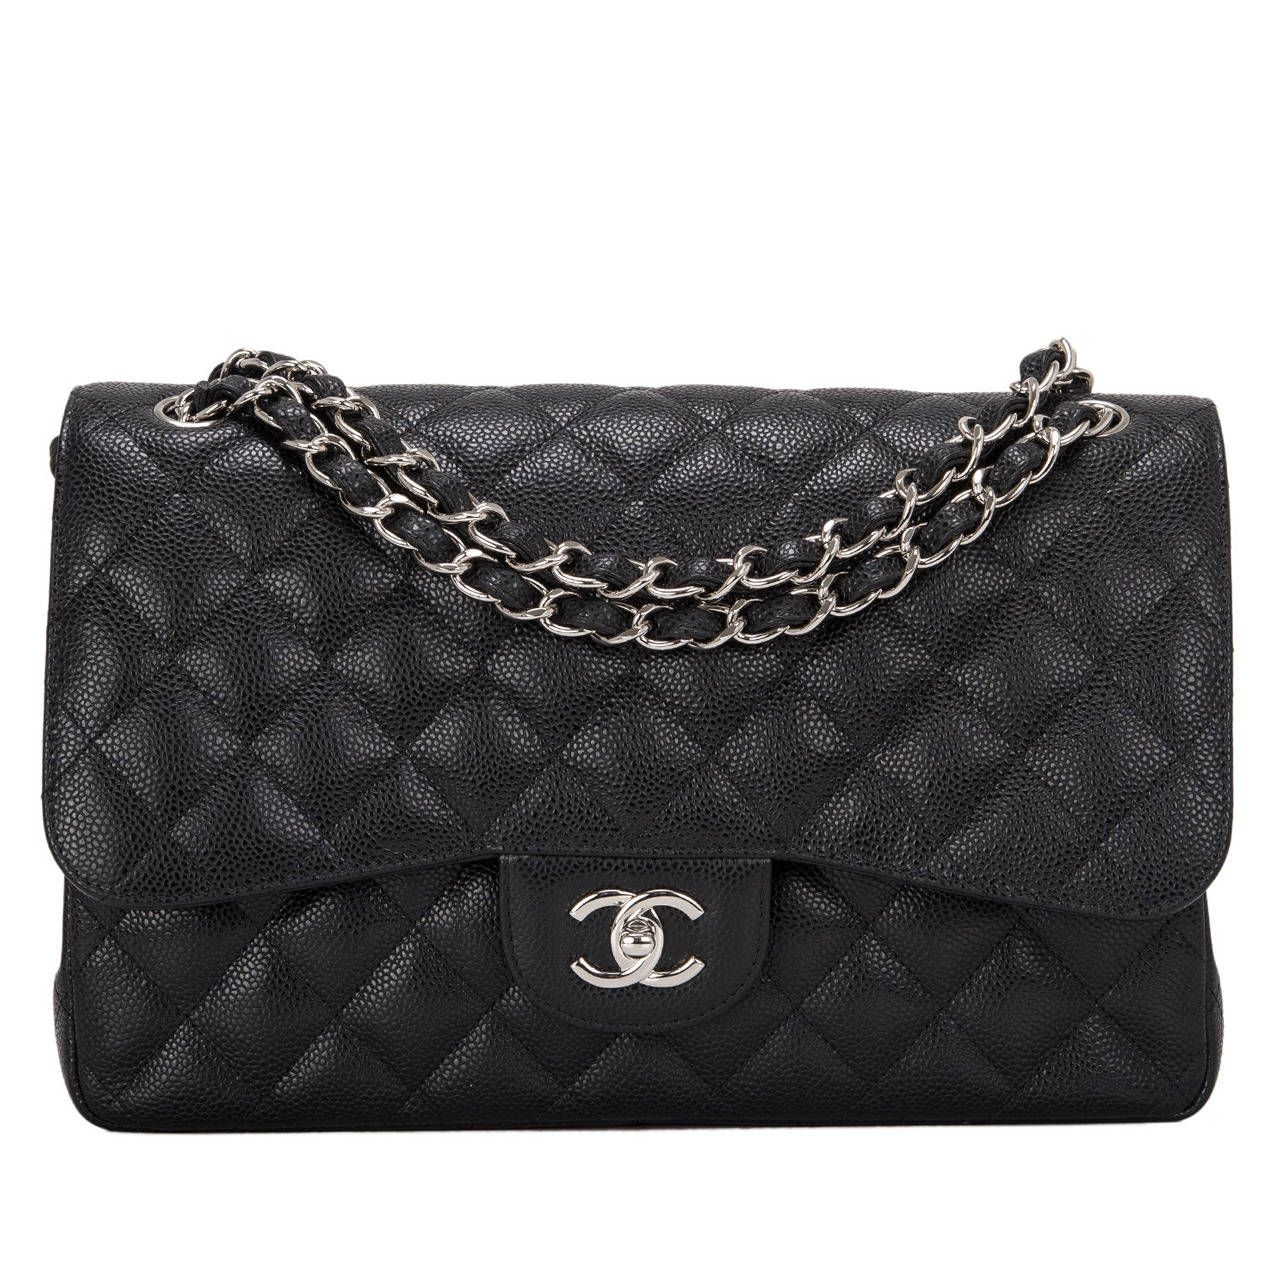 d2b64c3bb404 Chanel Black Quilted Caviar Jumbo Classic Double Flap Bag